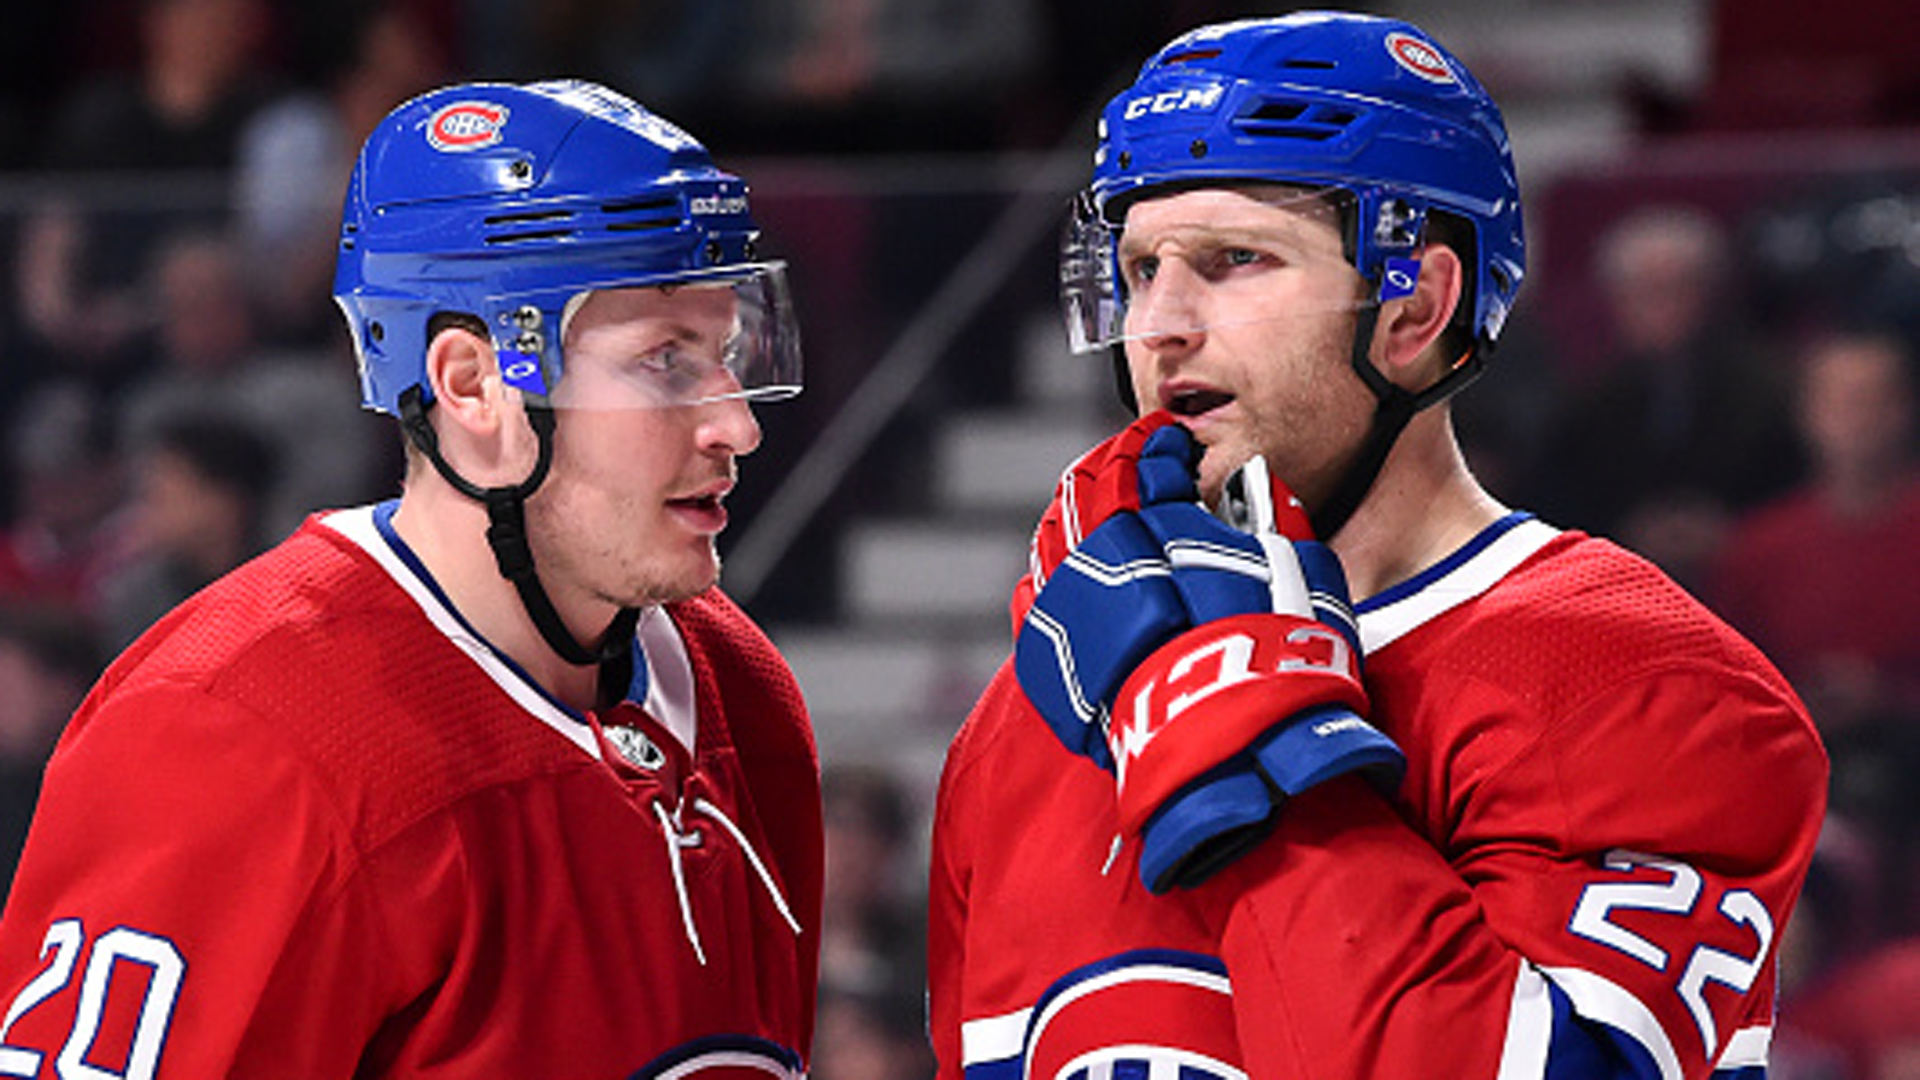 Alzner, Deslauriers in as Habs take on Blues team that plays 'heavy game'